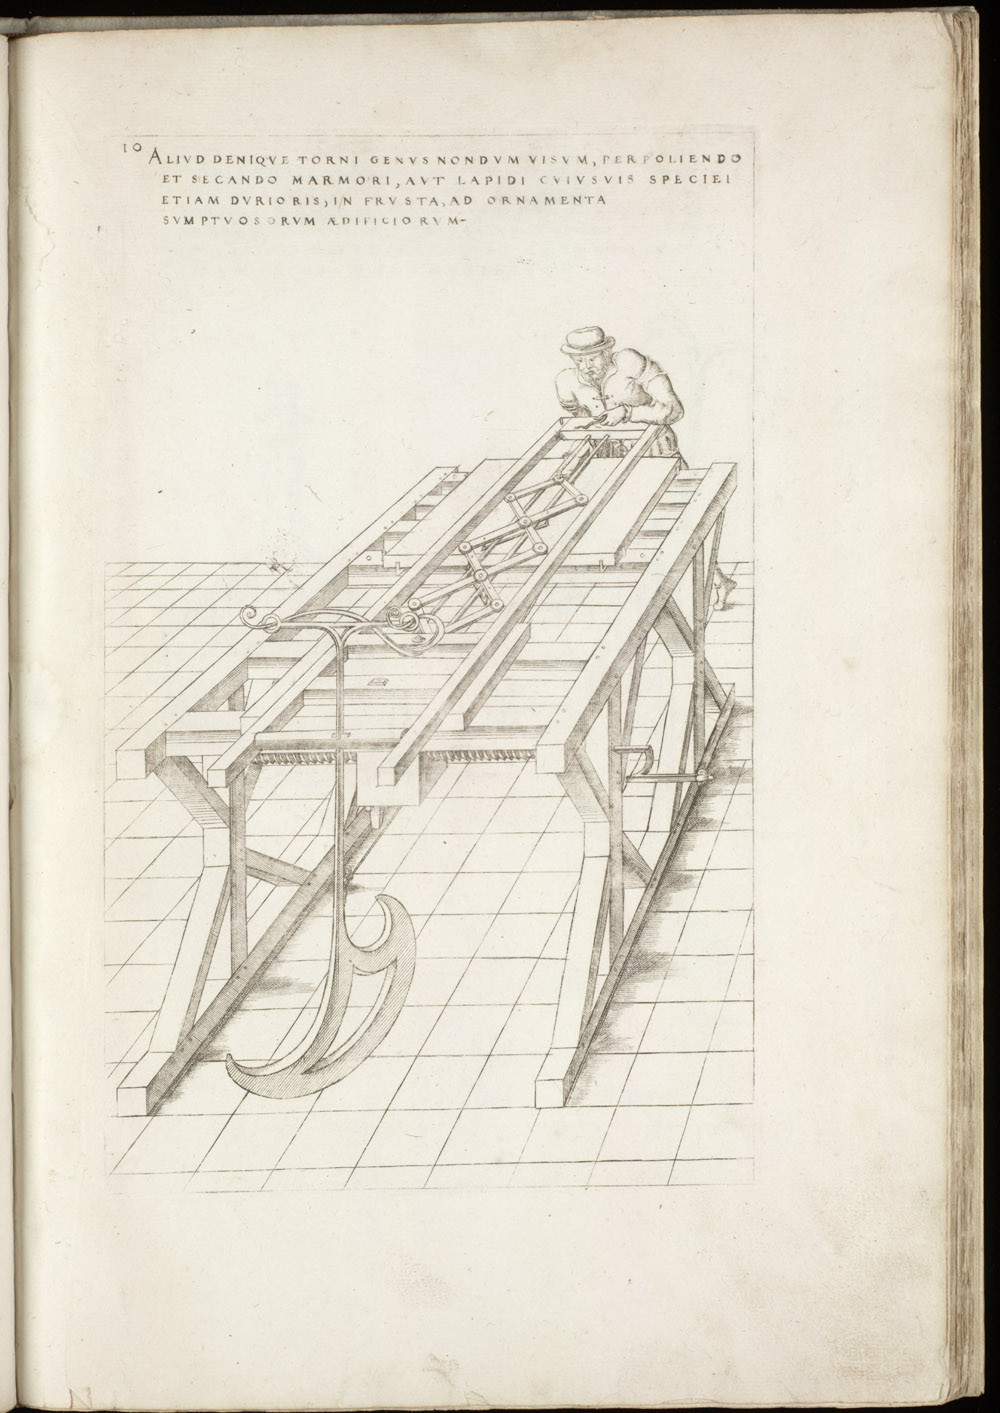 Plate 10 [Stone and marble cutter],  Image number:SIL4-2-53a